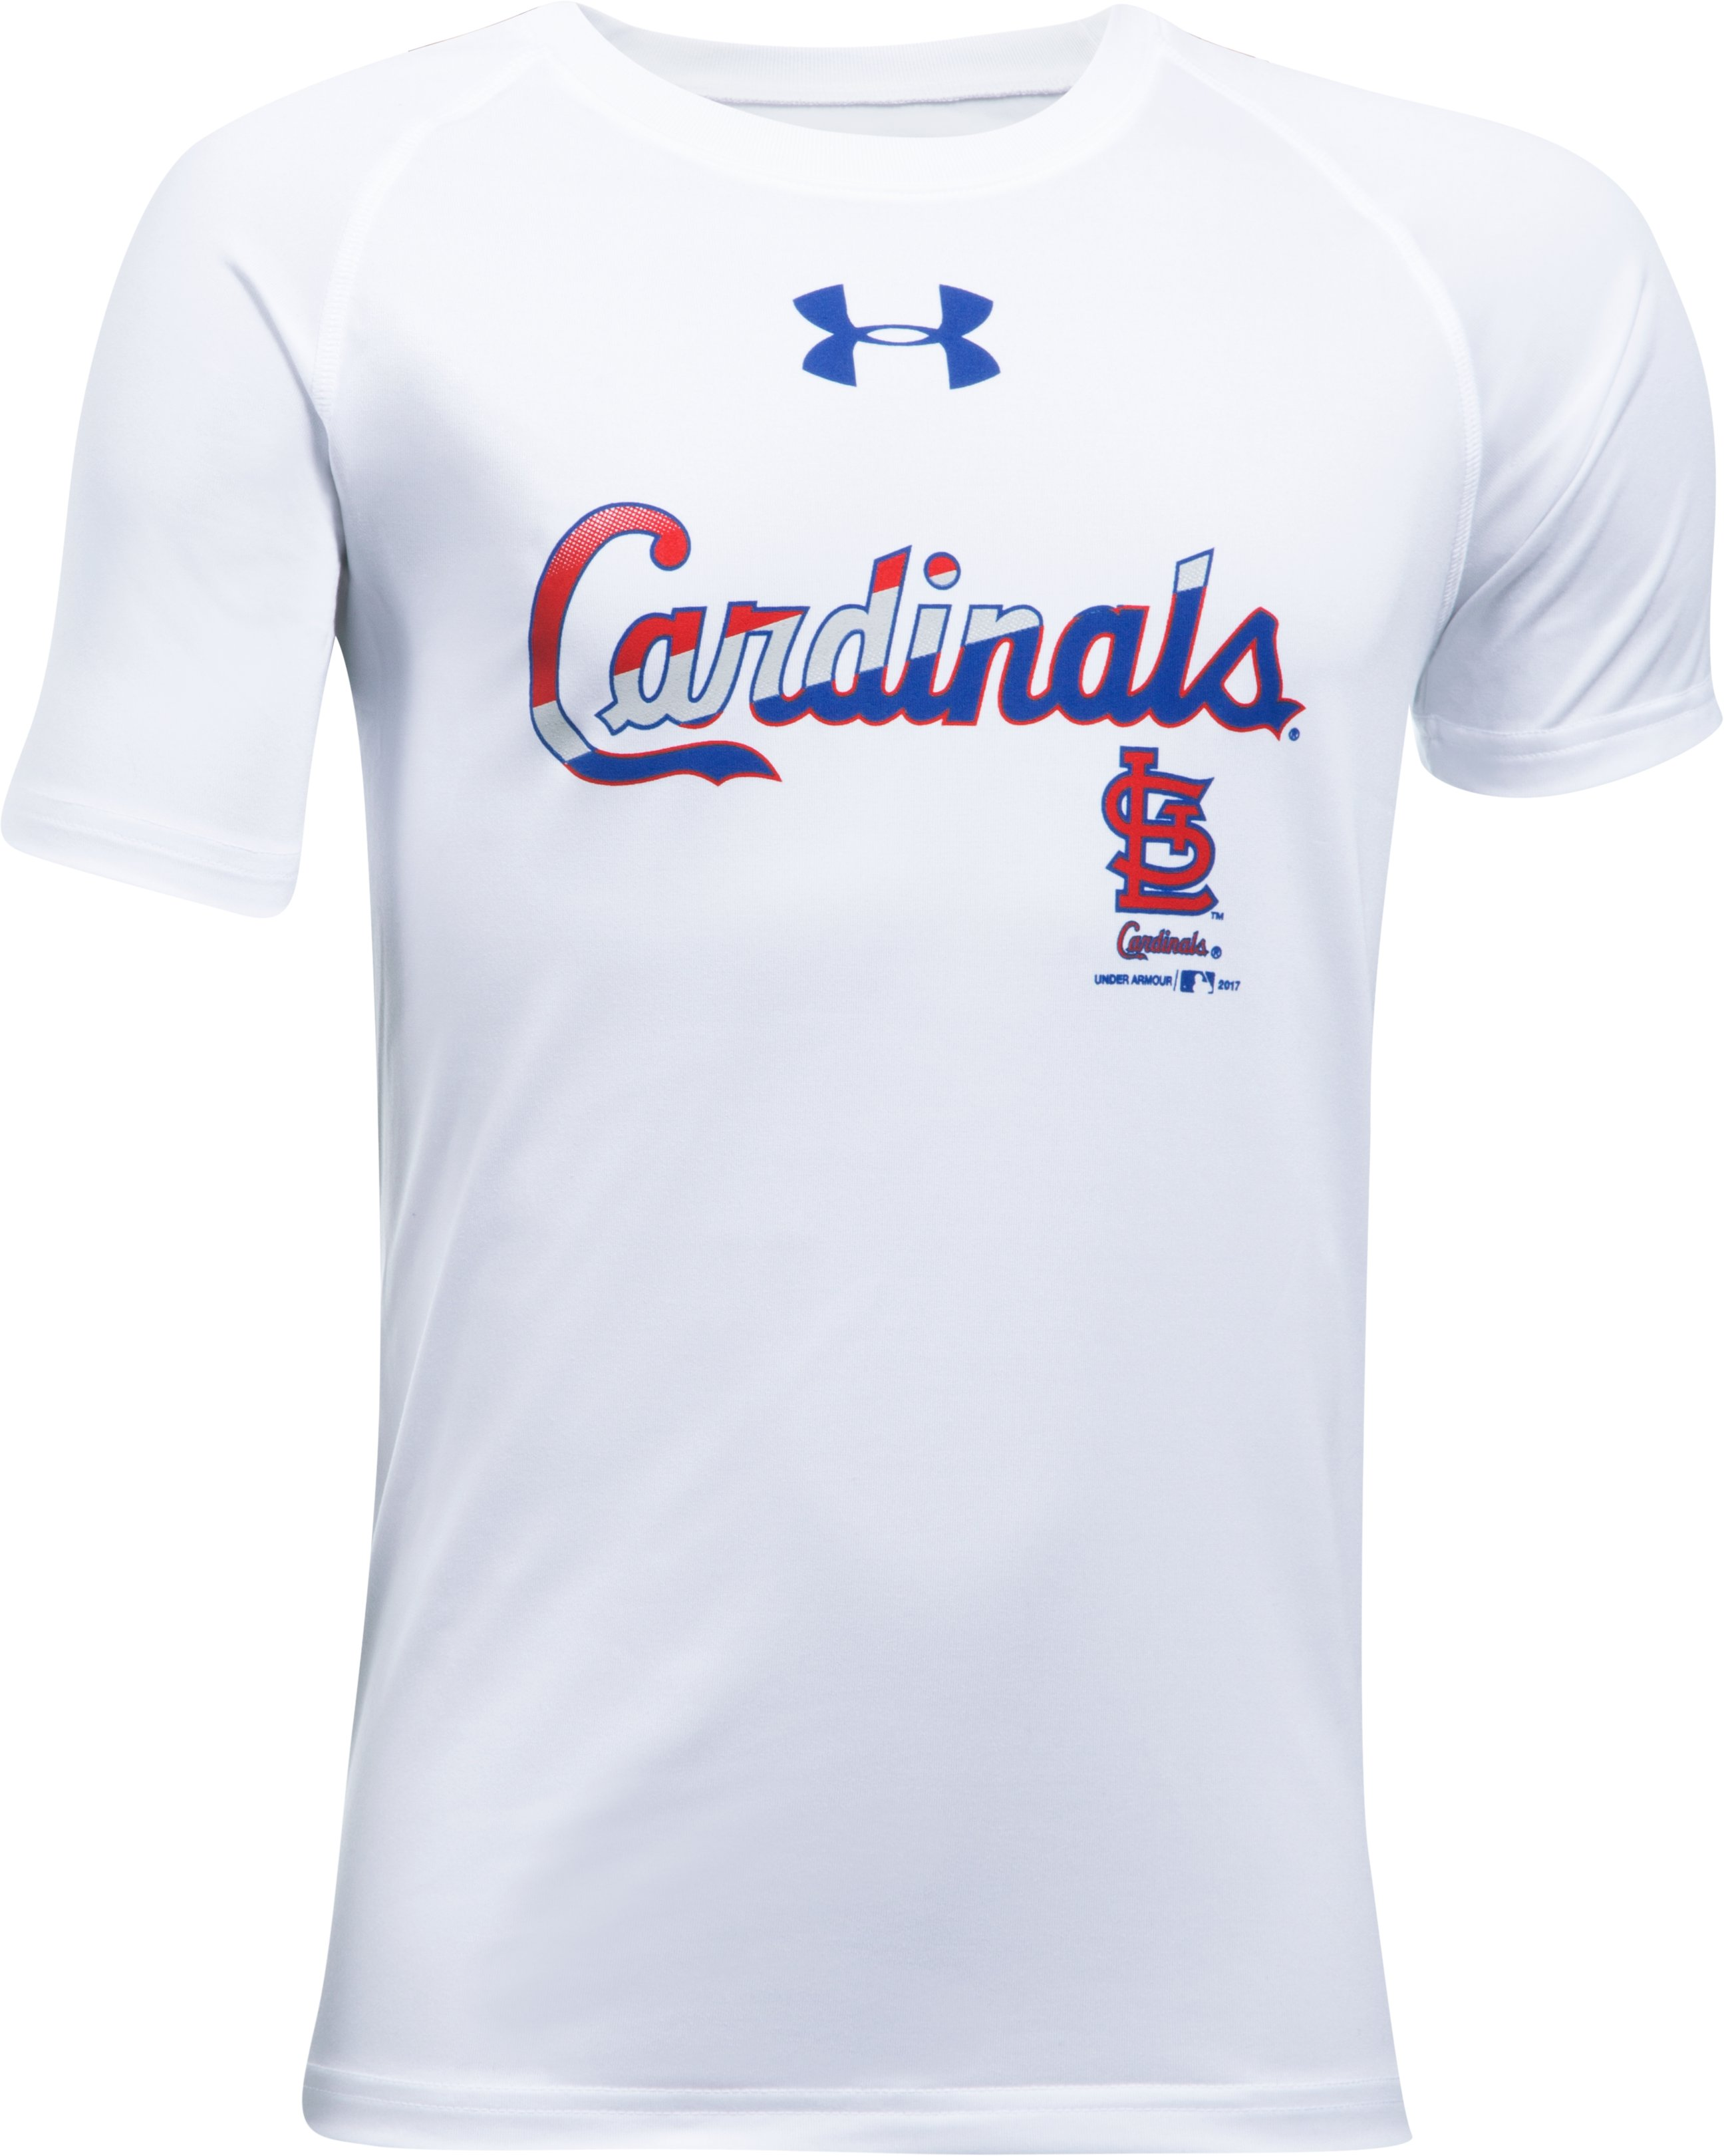 Boys' St. Louis Cardinals T-Shirt, White, undefined